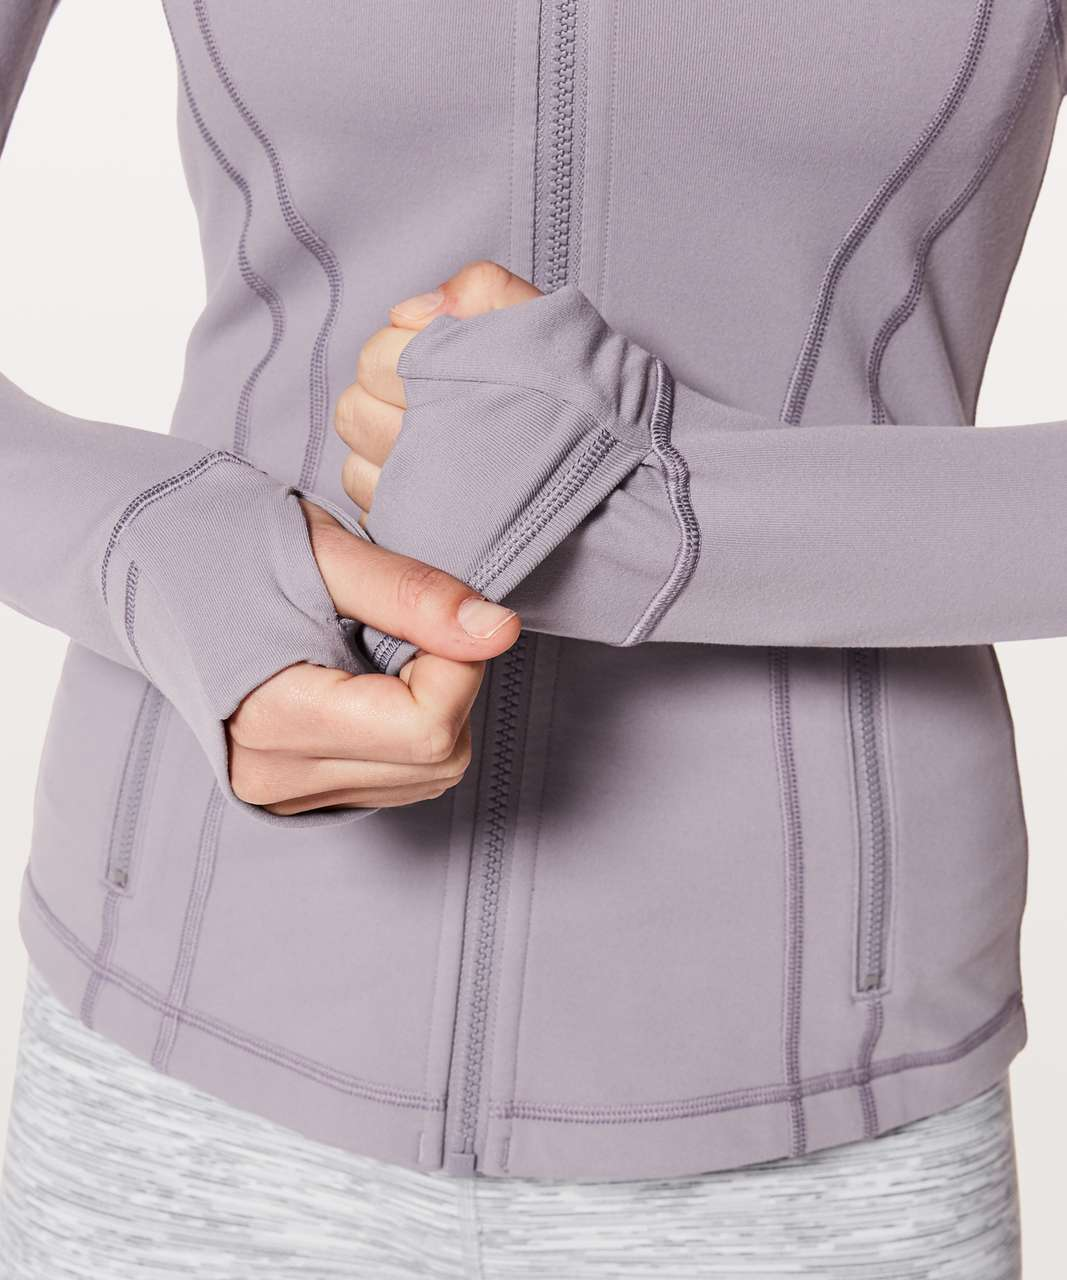 Lululemon Define Jacket - Dusty Dawn (First Release)